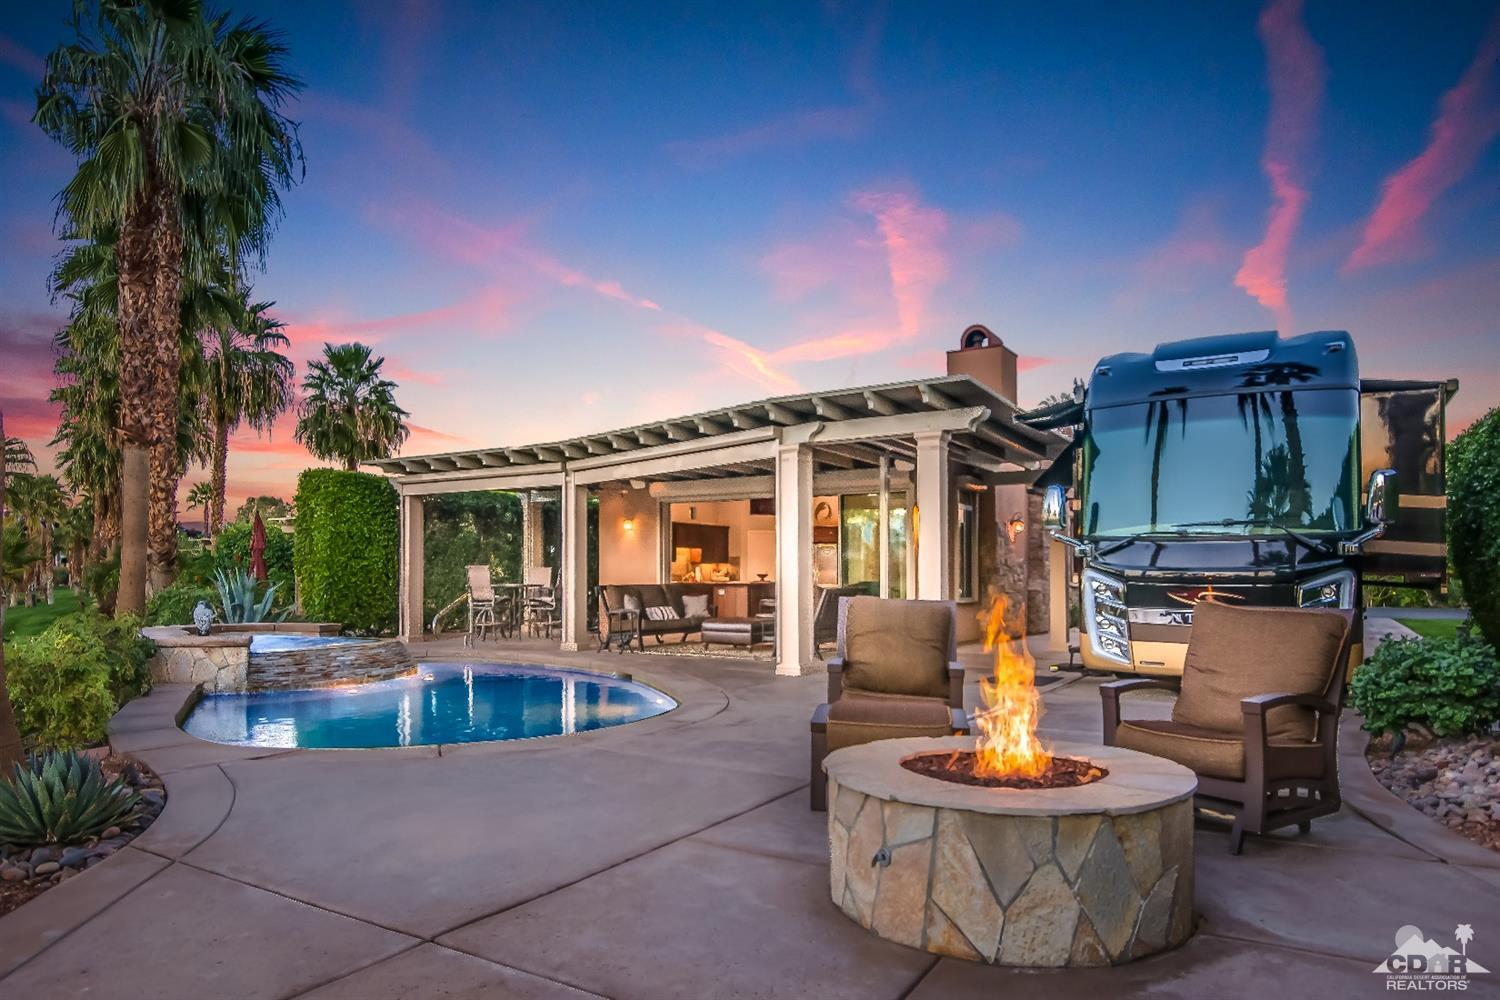 Indio CA Homes for Sale - Indio Southern California Real Estate